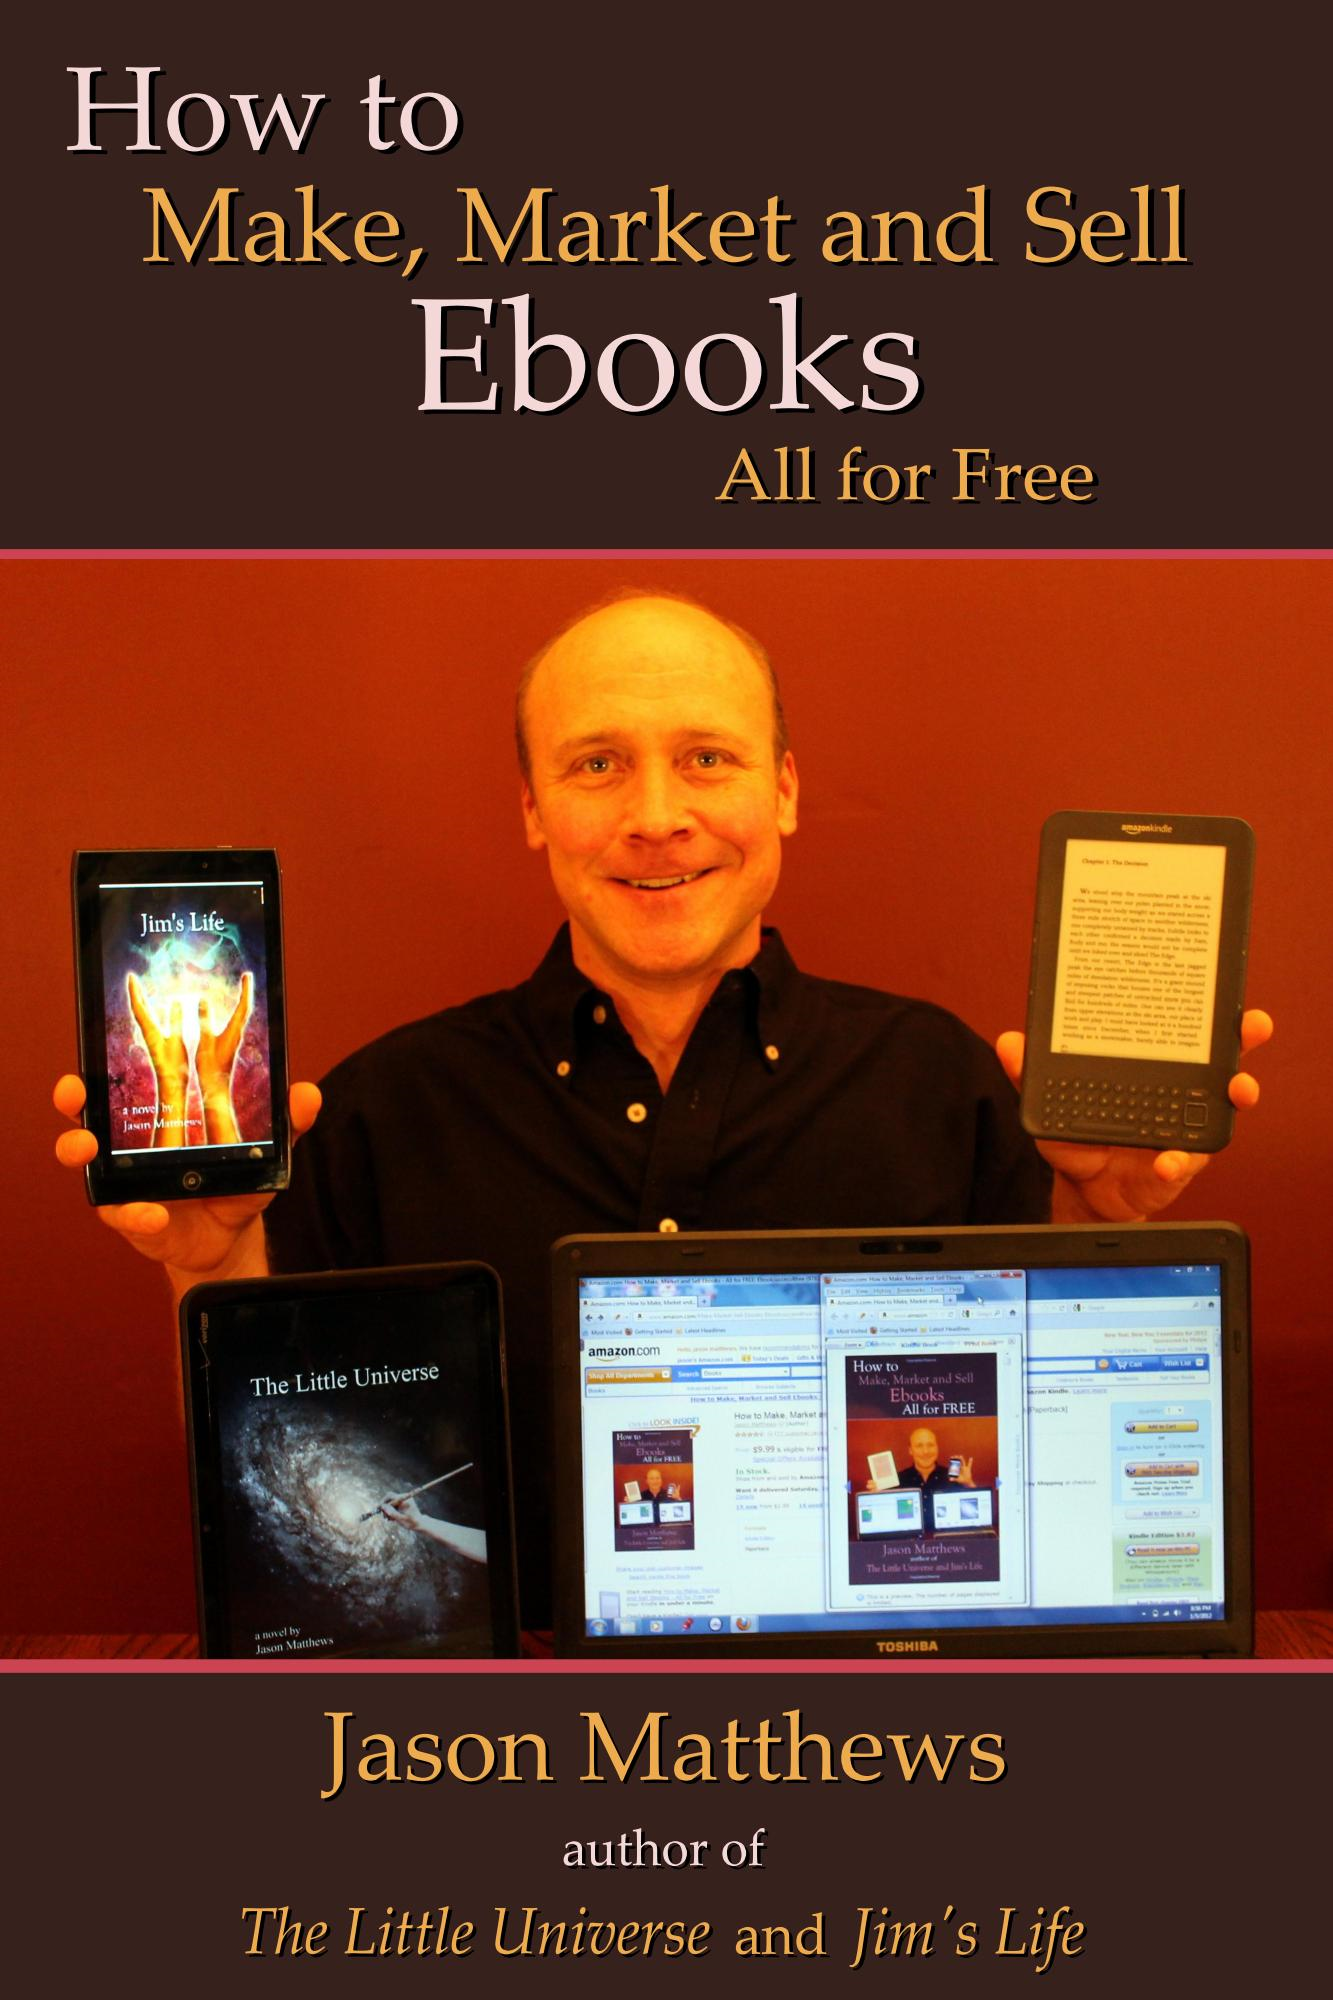 How to Make, Market and Sell Ebooks - All for Free By: Jason Matthews